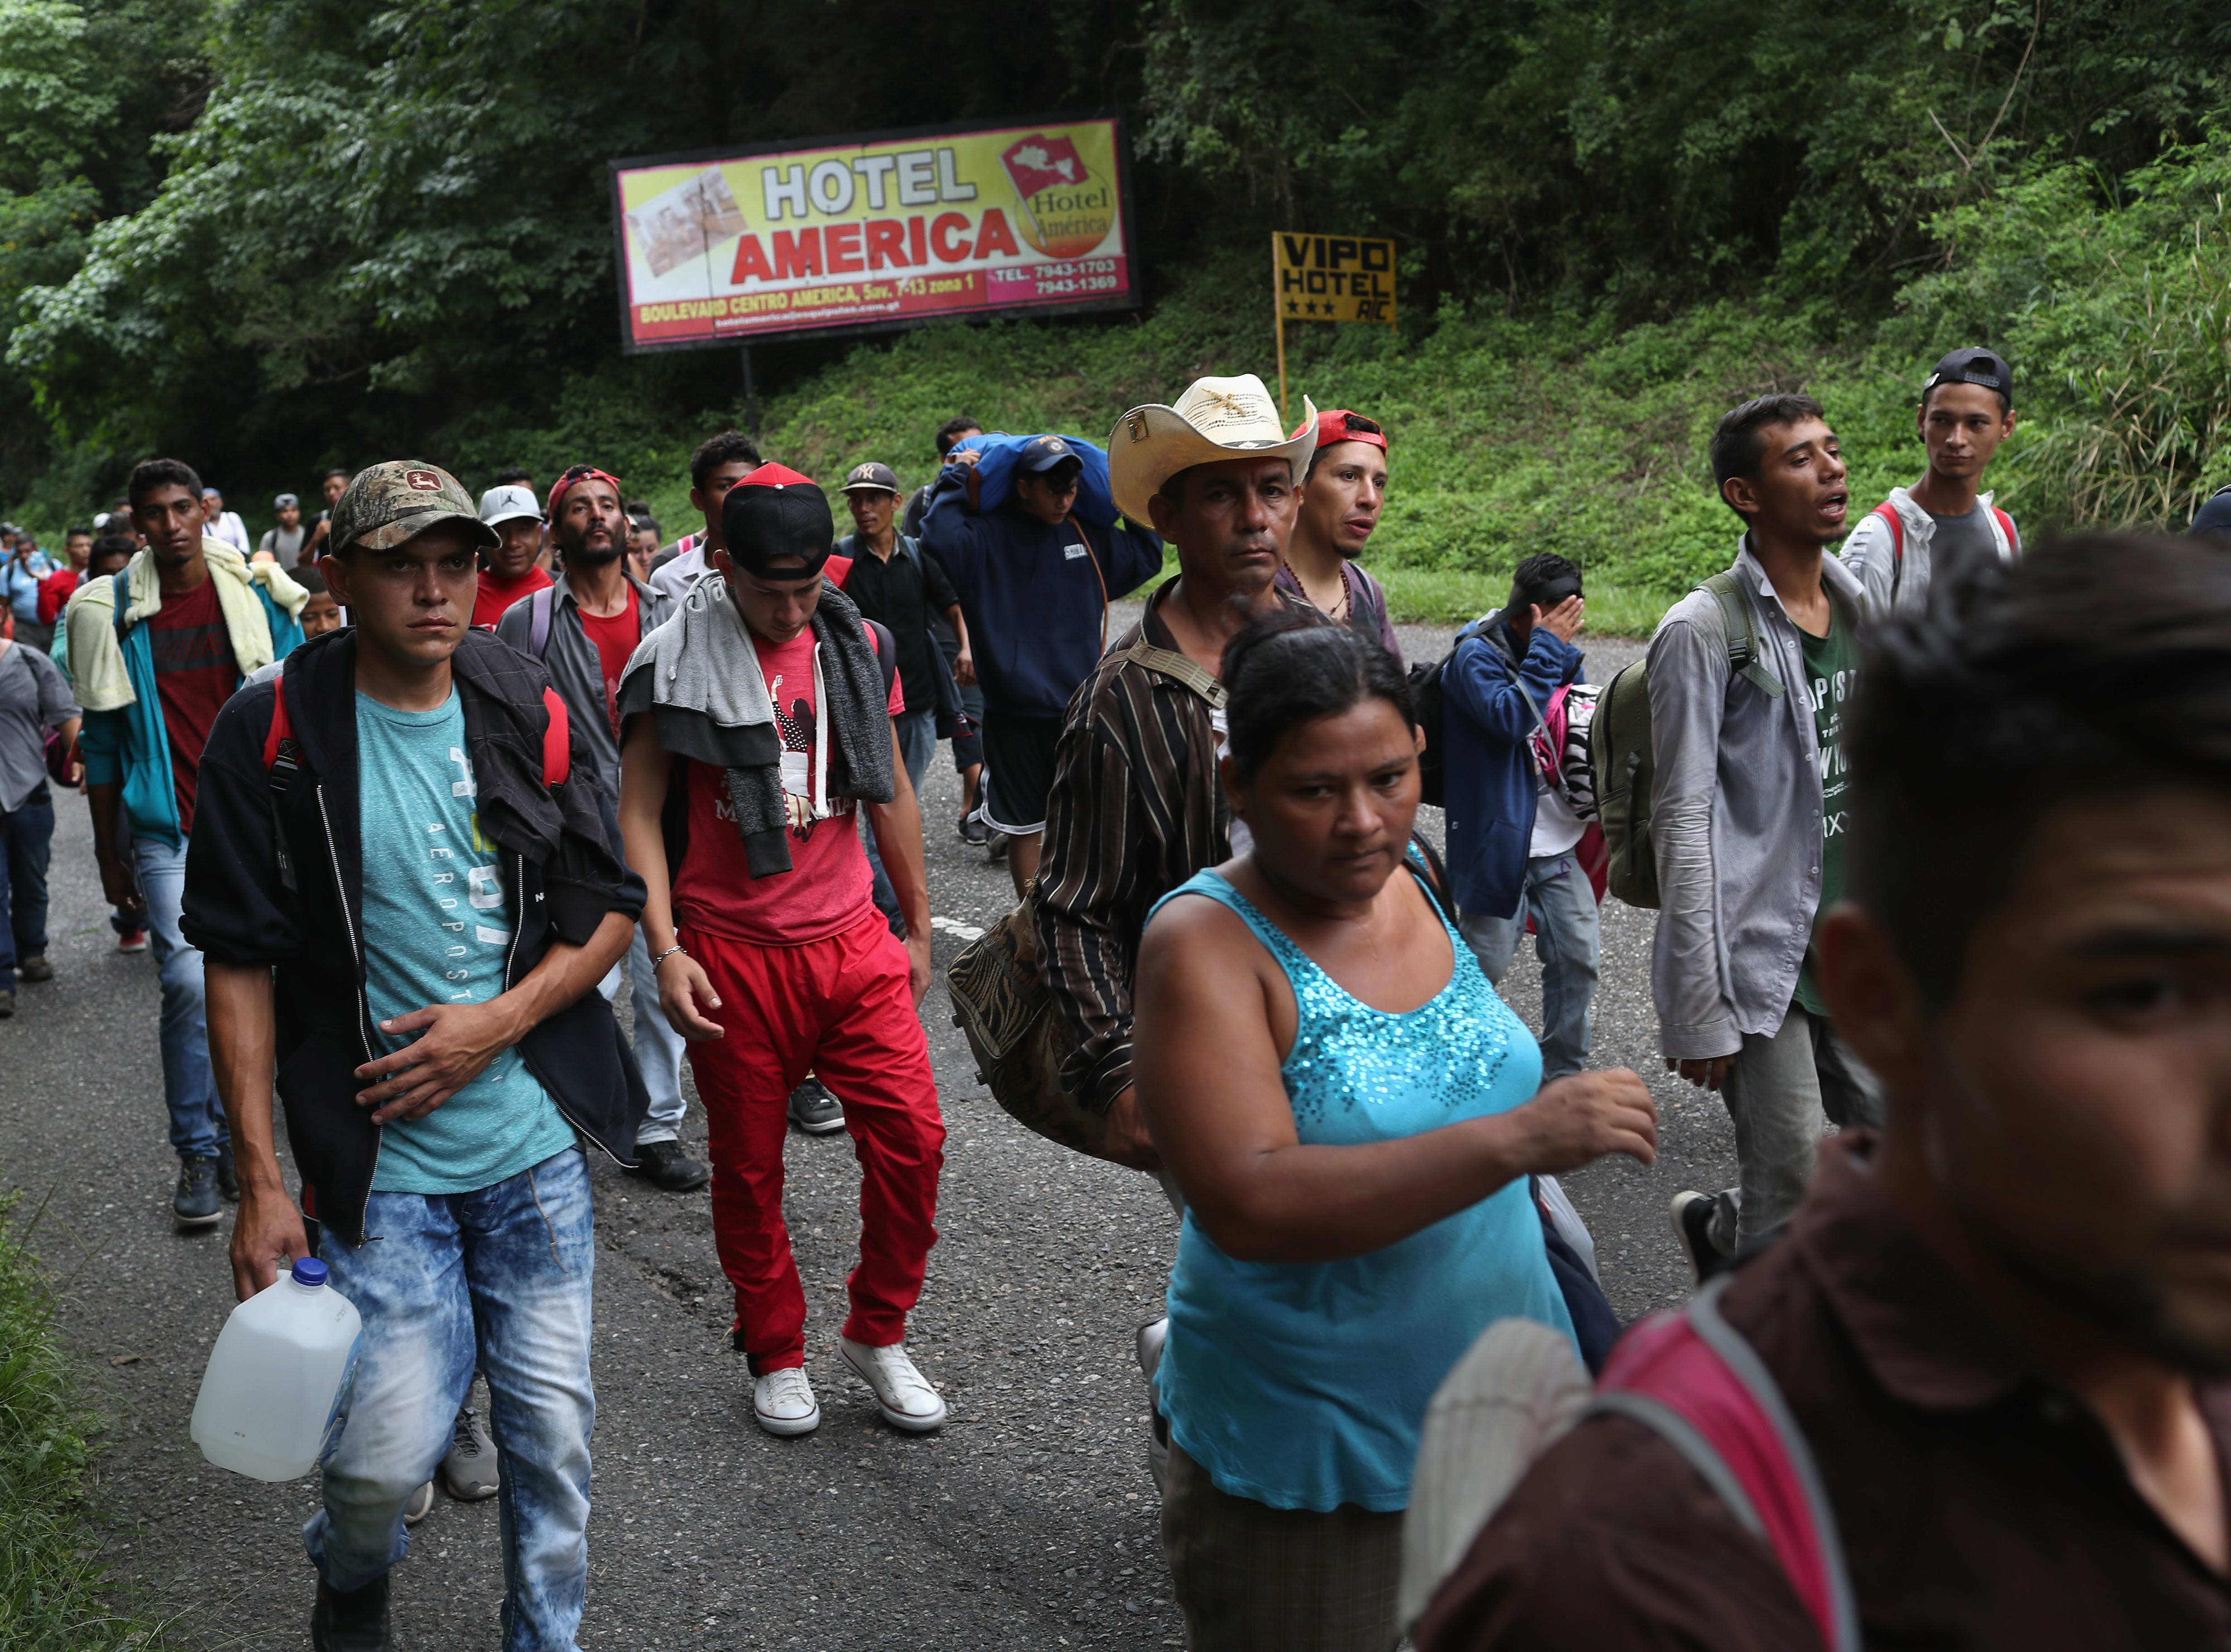 QUEZALTEPEQUE, GUATEMALA - OCTOBER 16:  Honduran immigrants, some of more than 1,500 people in a migrant caravan, travel north on October 16, 2018 near Quezaltepeque, Guatemala. A caravan of Central Americans, the second of its kind in 2018, began in San Pedro Sula, Honduras with plans to march north through Guatemala and Mexico in route to the United States. Honduras has some of the highest crime and poverty rates in Latin America. (Photo by John Moore/Getty Images)